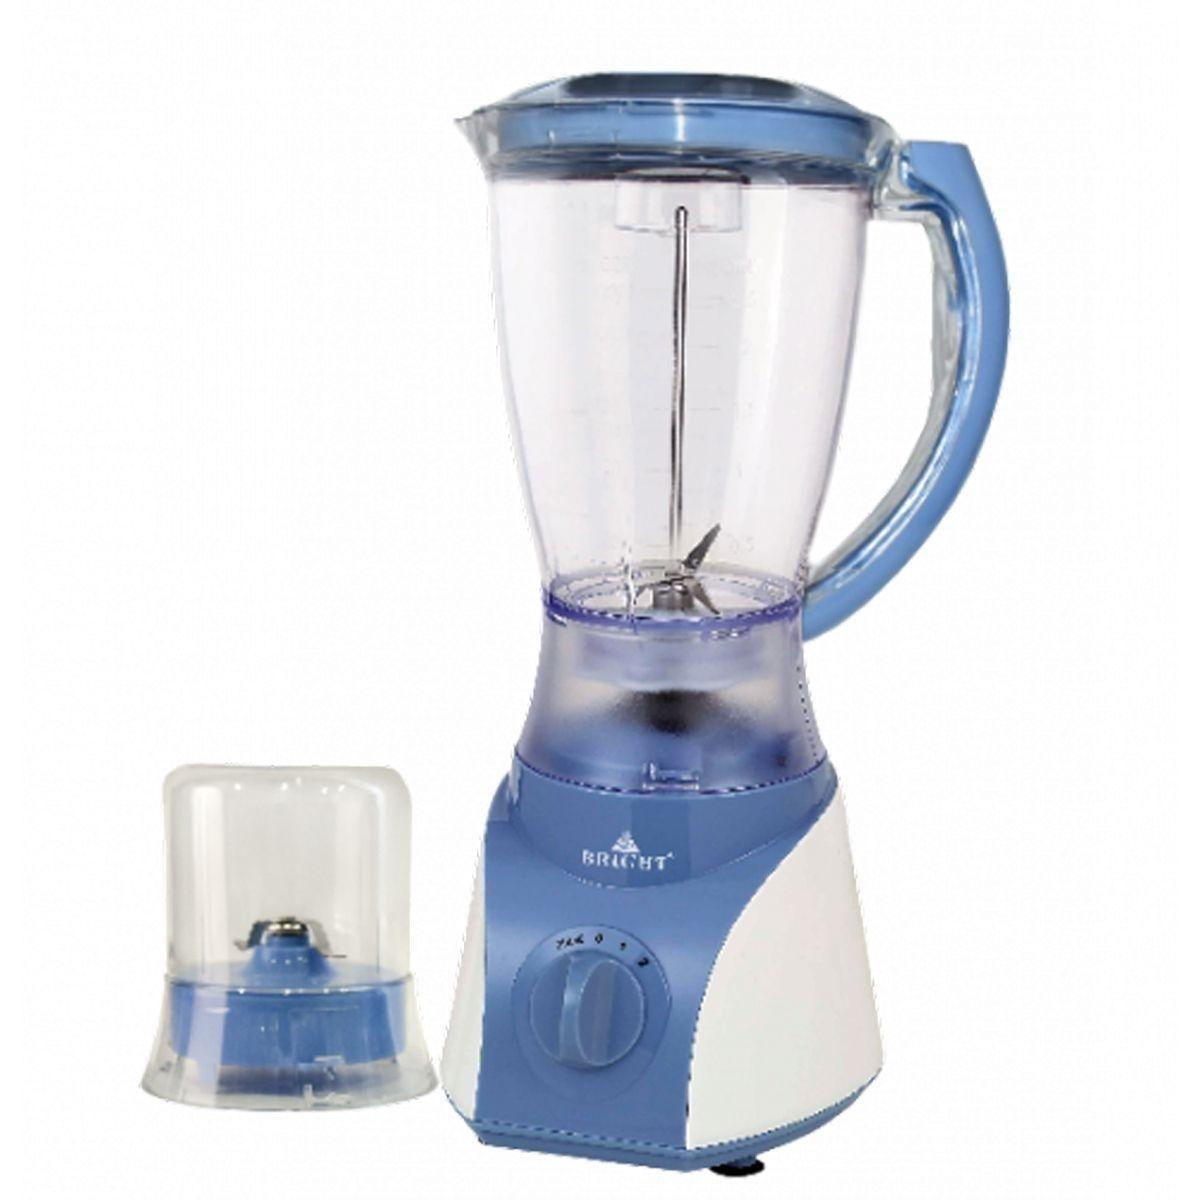 Blender With Grinder - BR-595